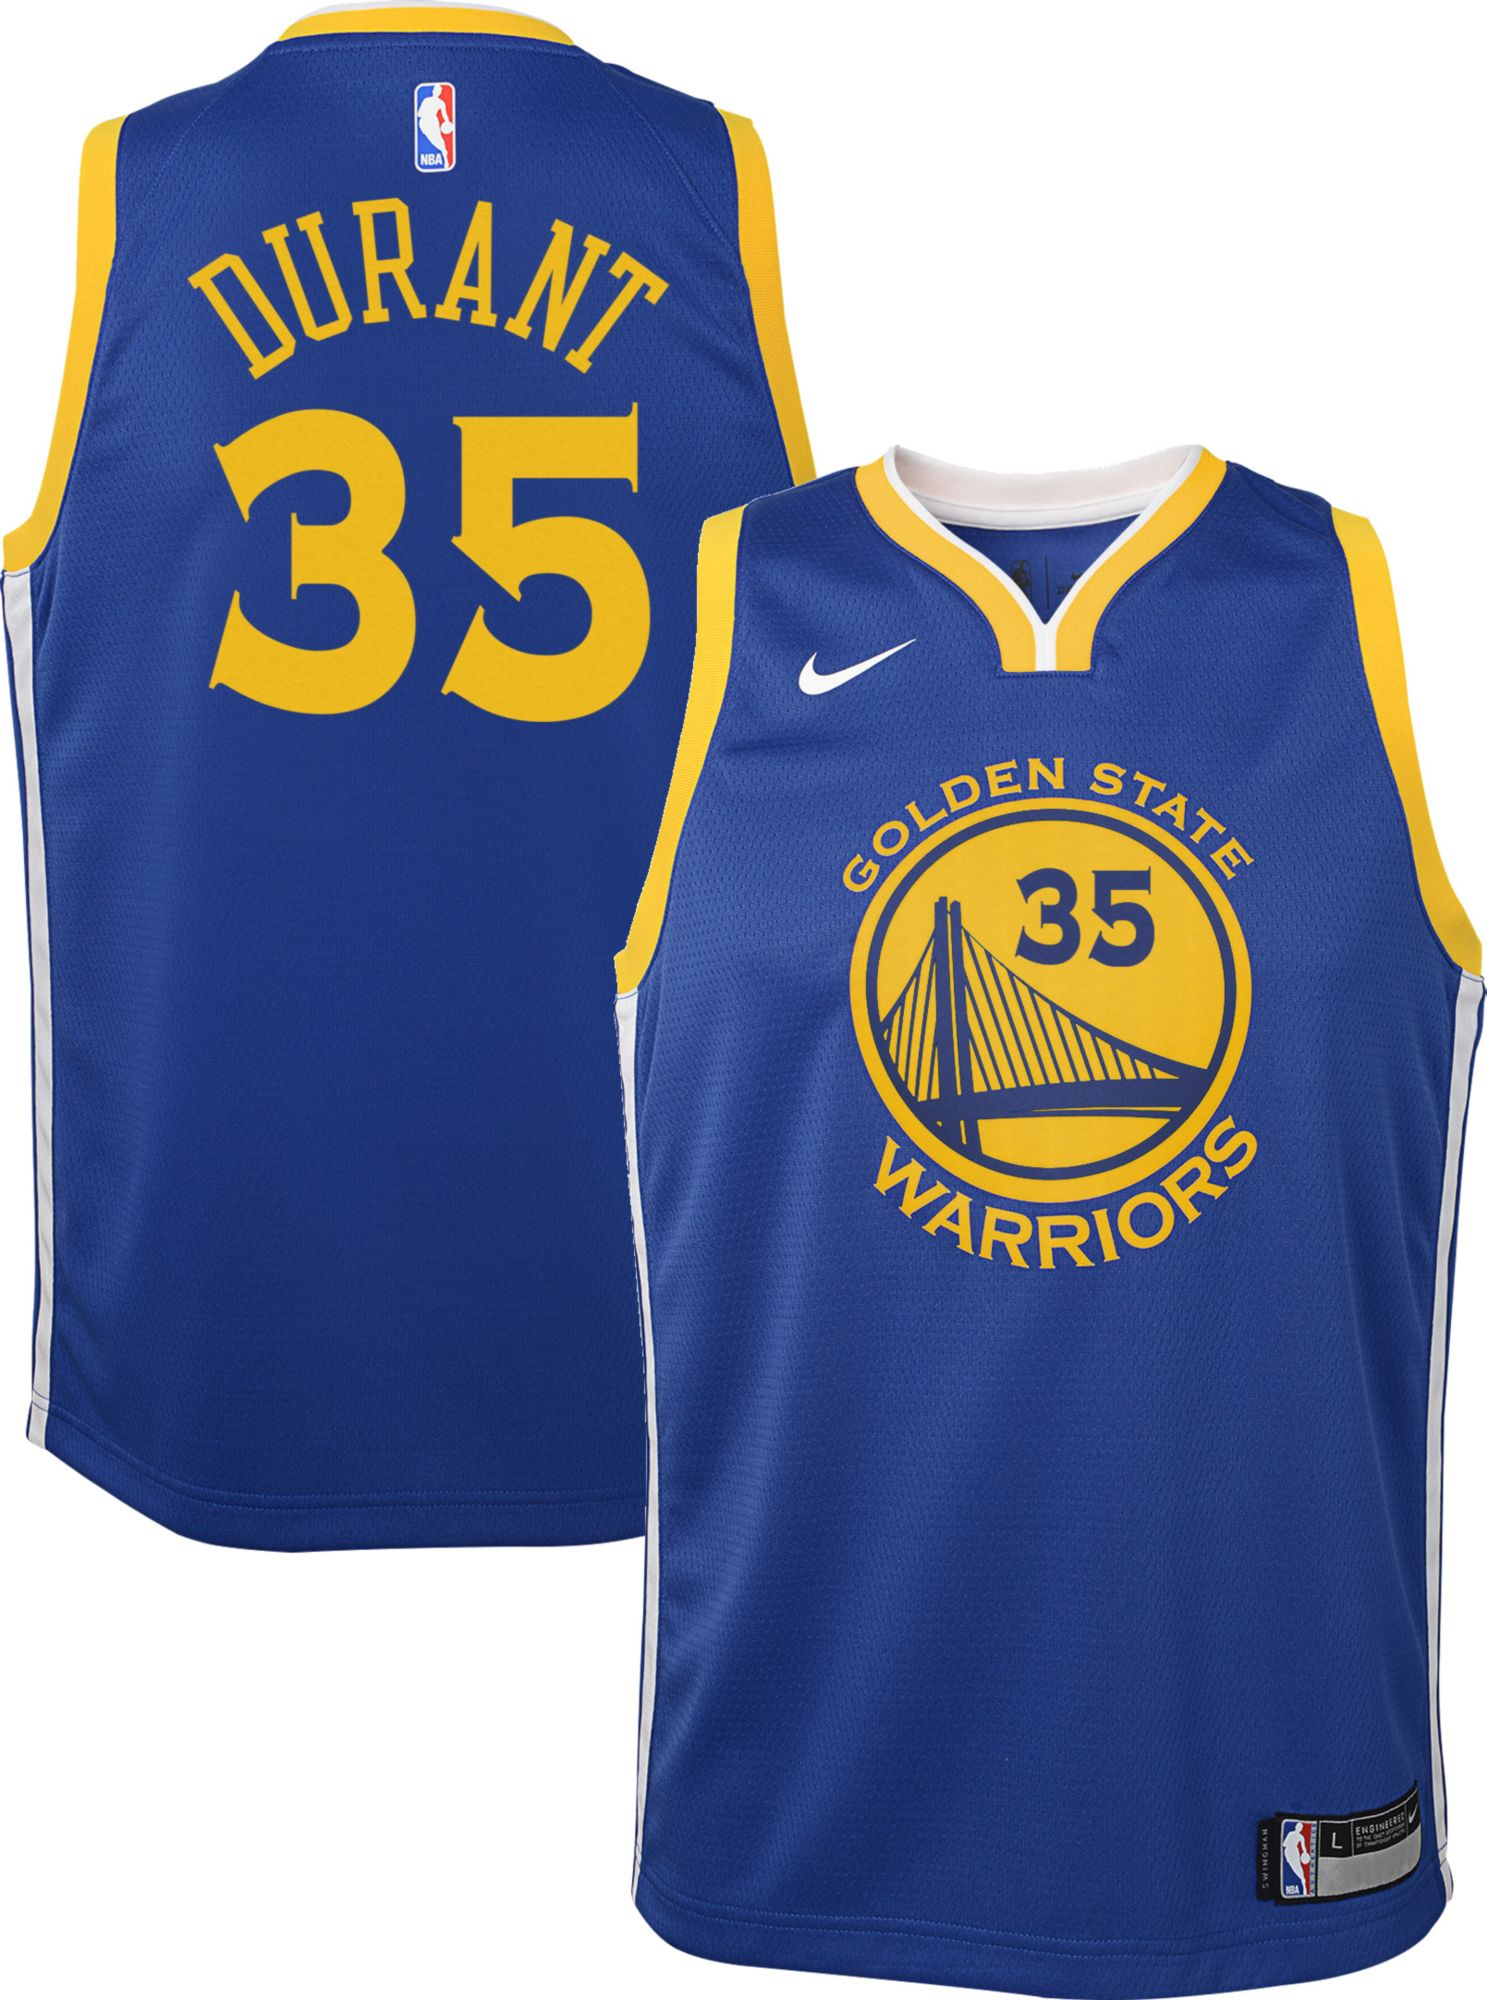 half off 39bb8 63512 kevin durant warriors kids jersey